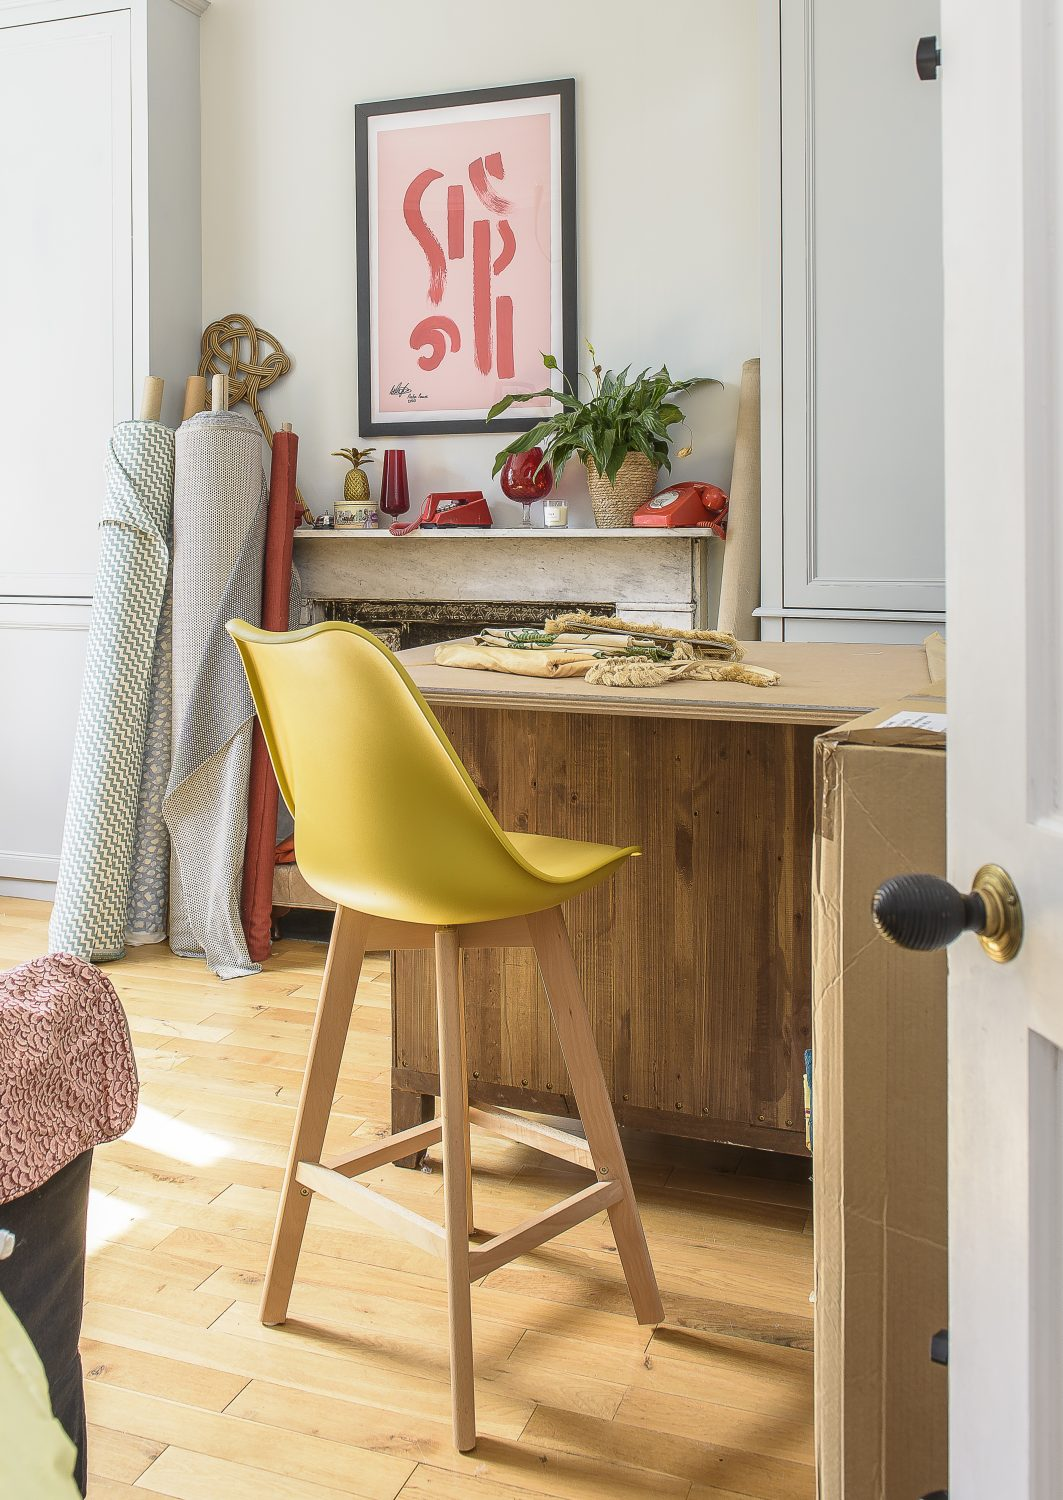 Jules made the fabric-cutting table in her workroom by putting a board on top of a chest of drawers that she bought from a British Heart Foundation furniture shop. The high stool was a Facebook Marketplace find